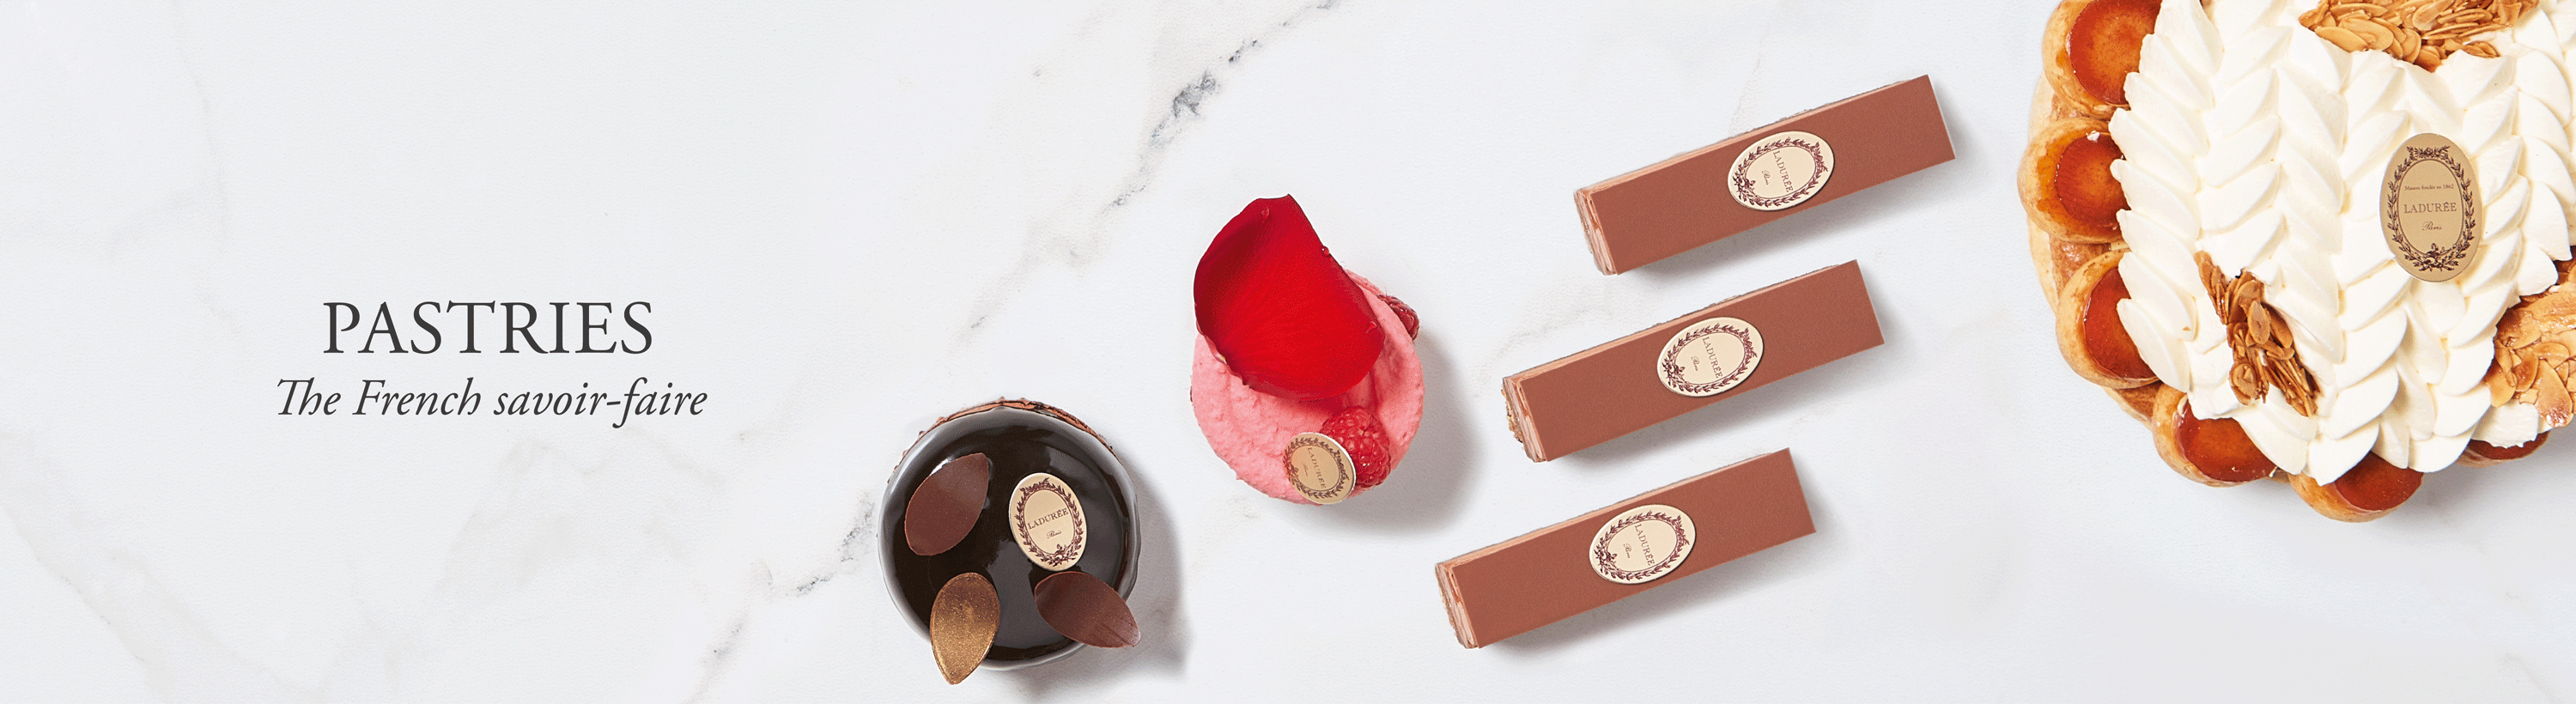 Pastries And Sweet Creations Of Maison Ladurée